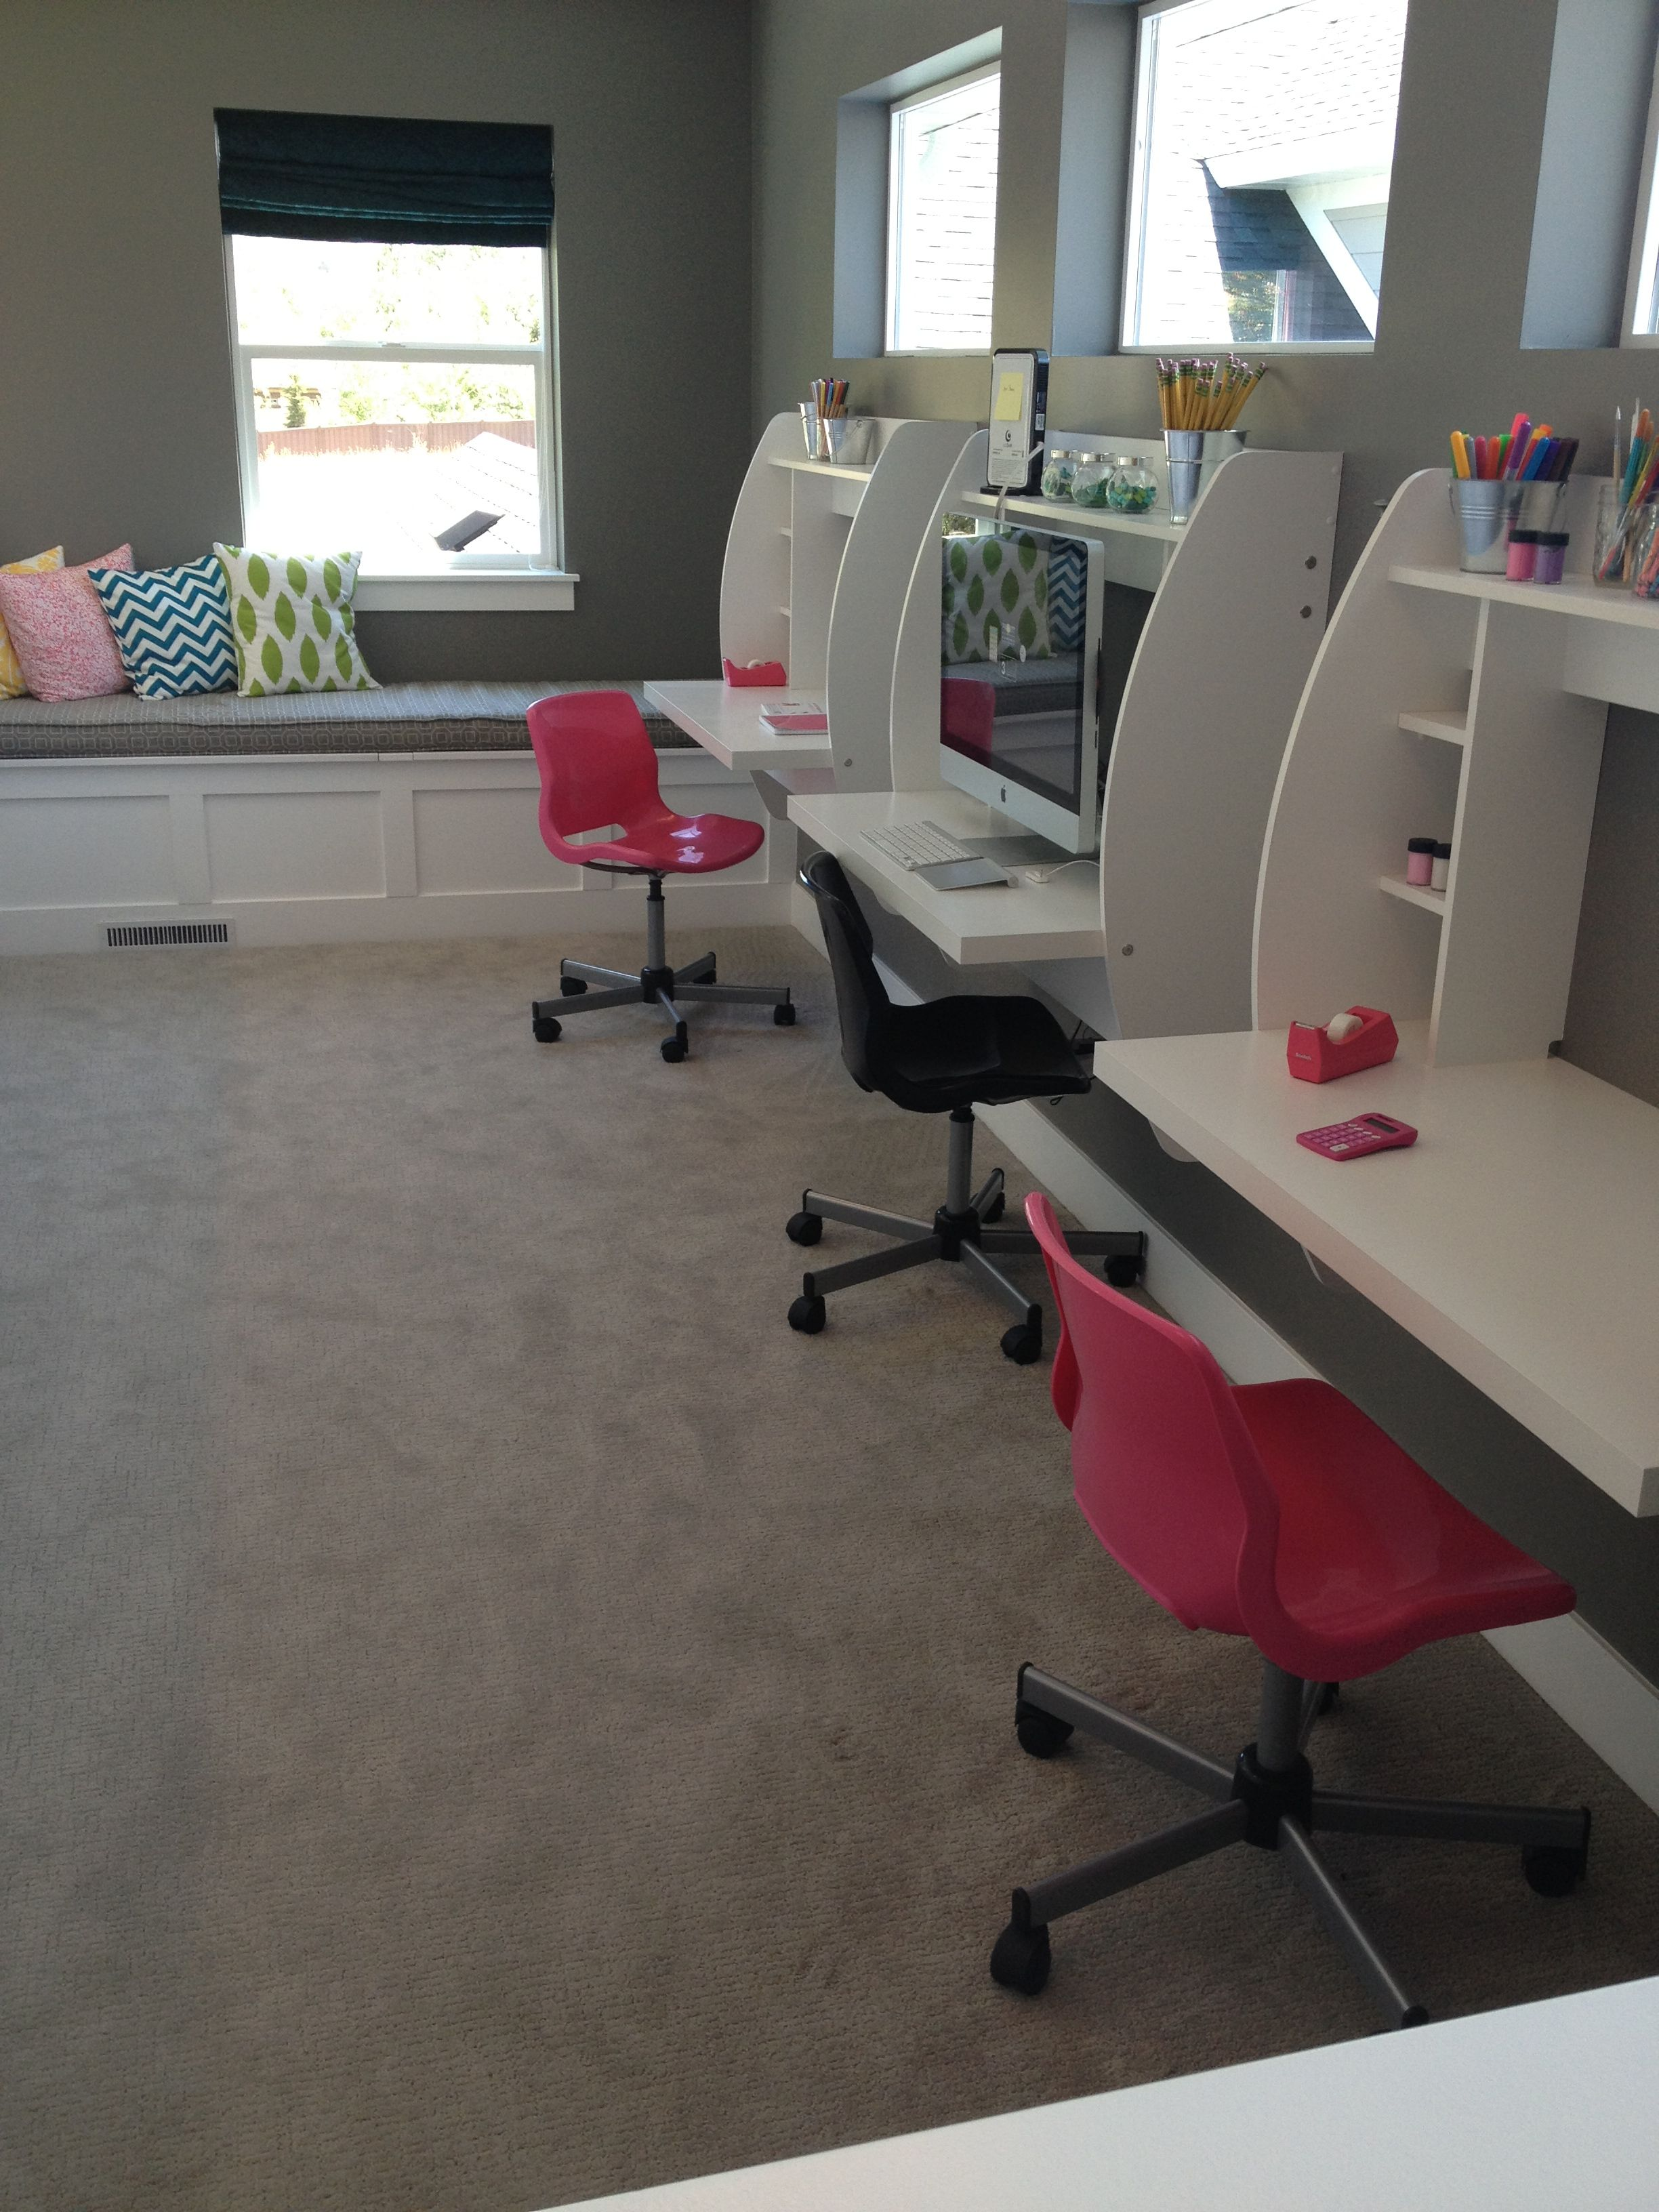 Basement Study Room: Kids Workspace, House Rooms, Home